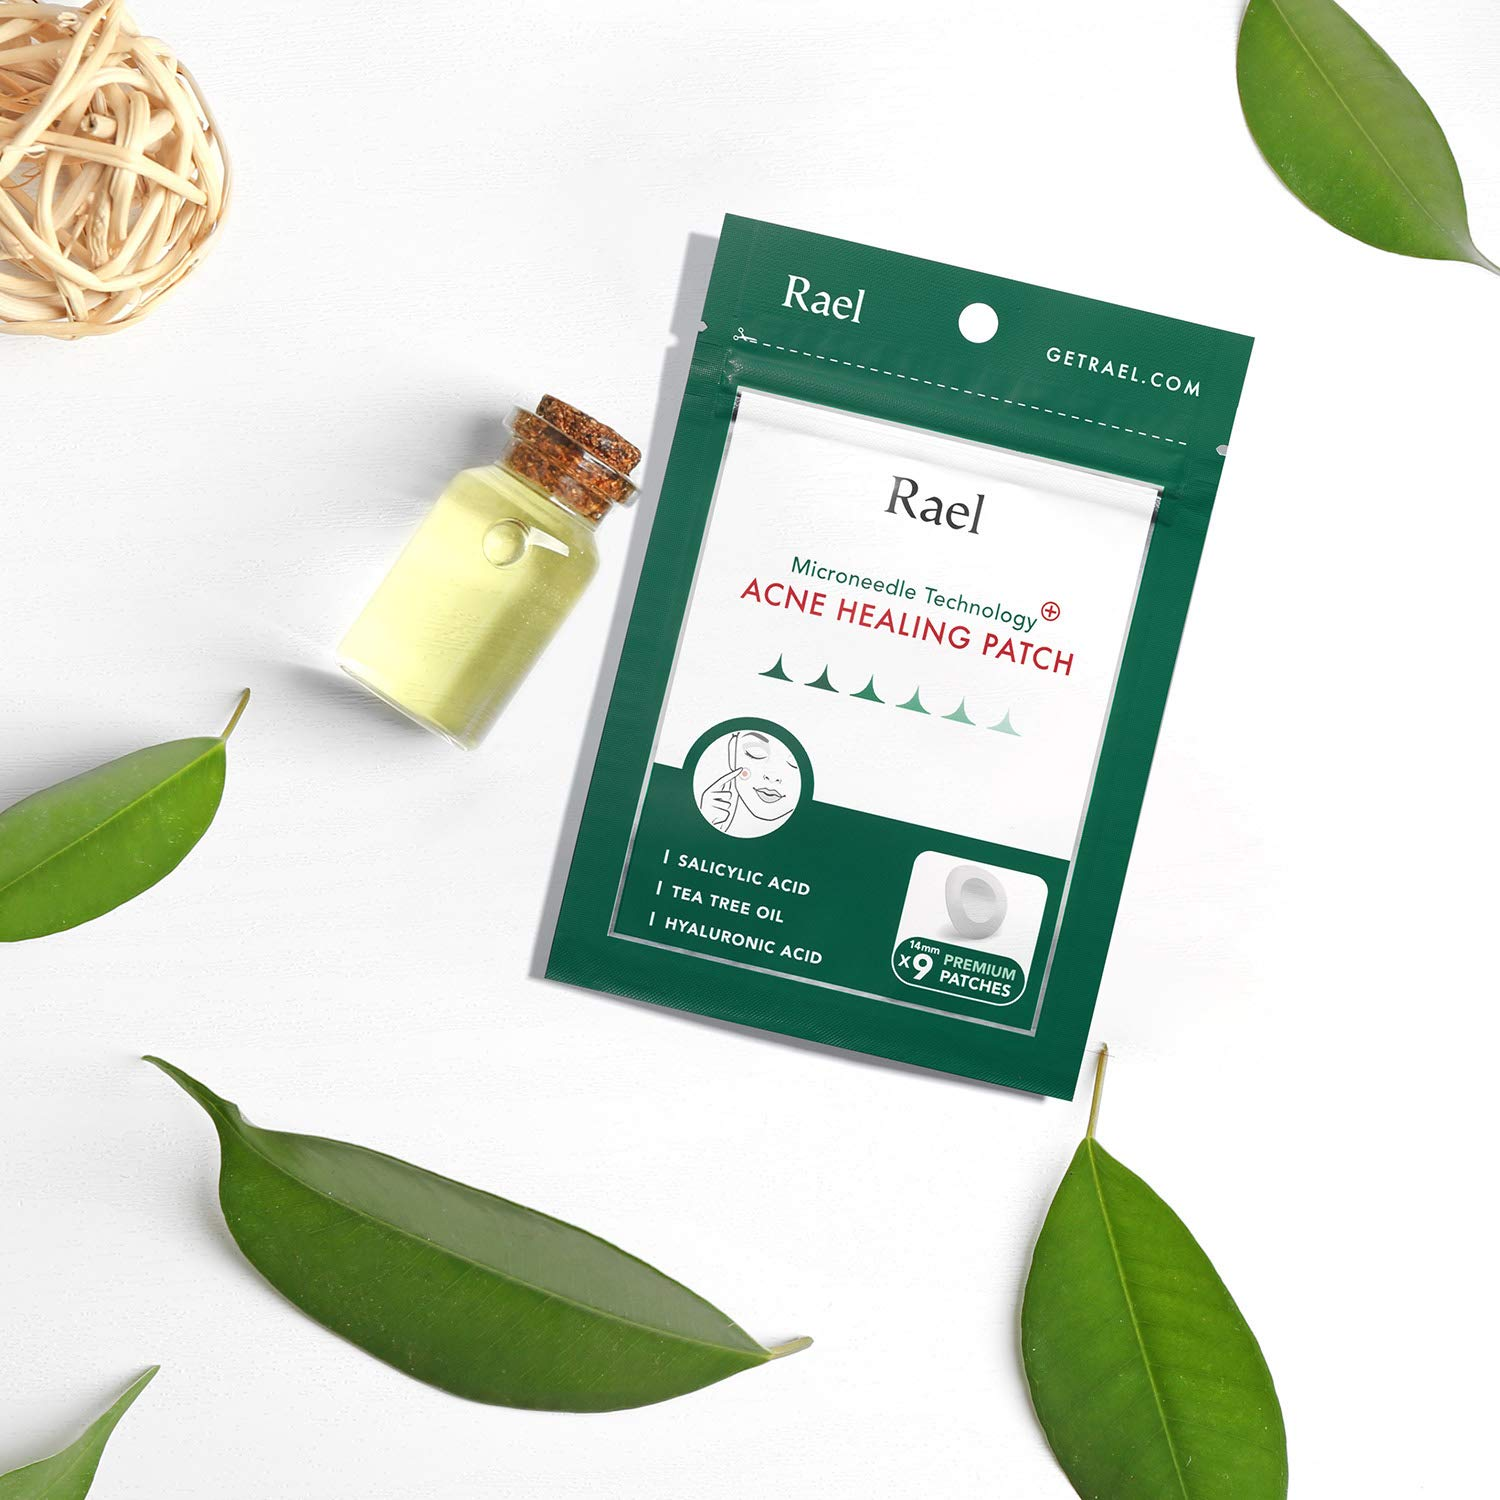 Rael Microneedle Acne Healing Patch - Pimple Acne Spot Tea Tree Treatment (4Pack, 36 Patches) by Rael (Image #6)